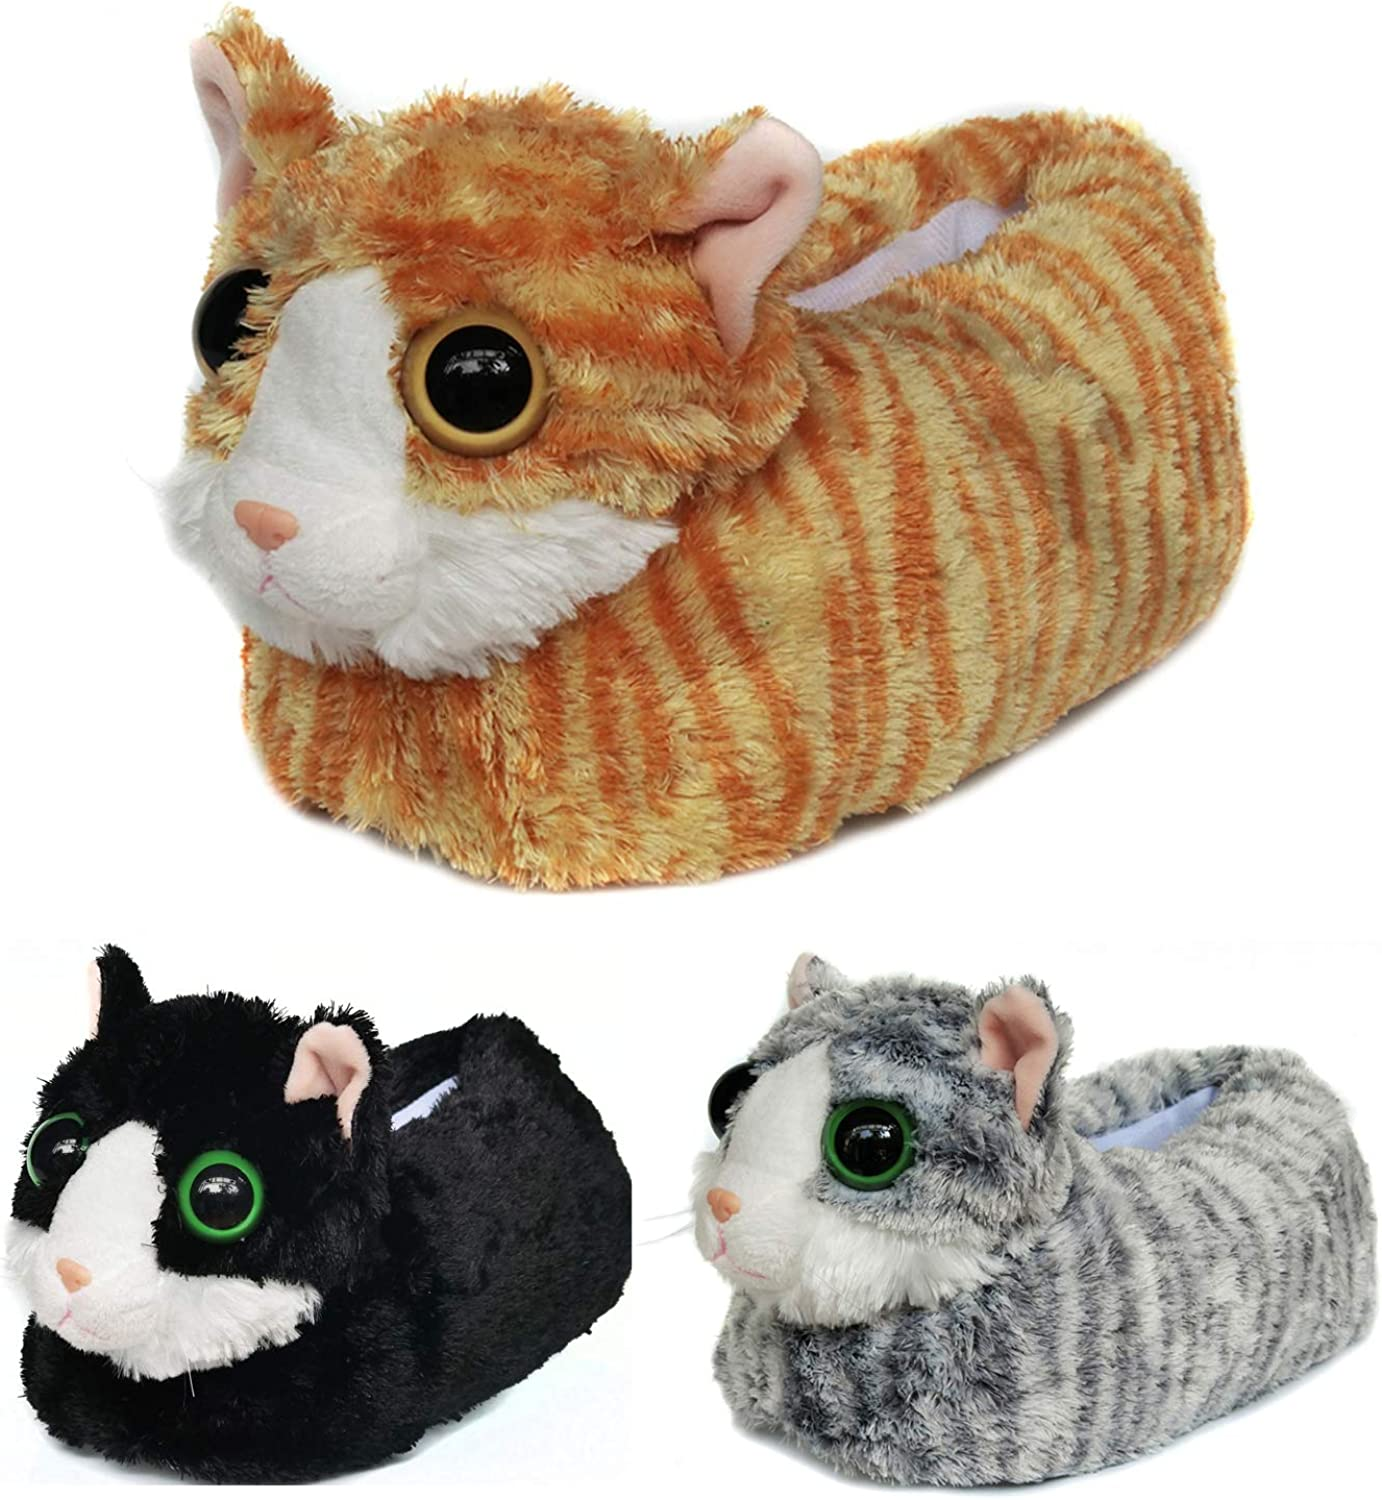 Indoor Fuzzy Winter Animal Cat Plush Kitty Soft Max 76% OFF Max 53% OFF Slippers Men for